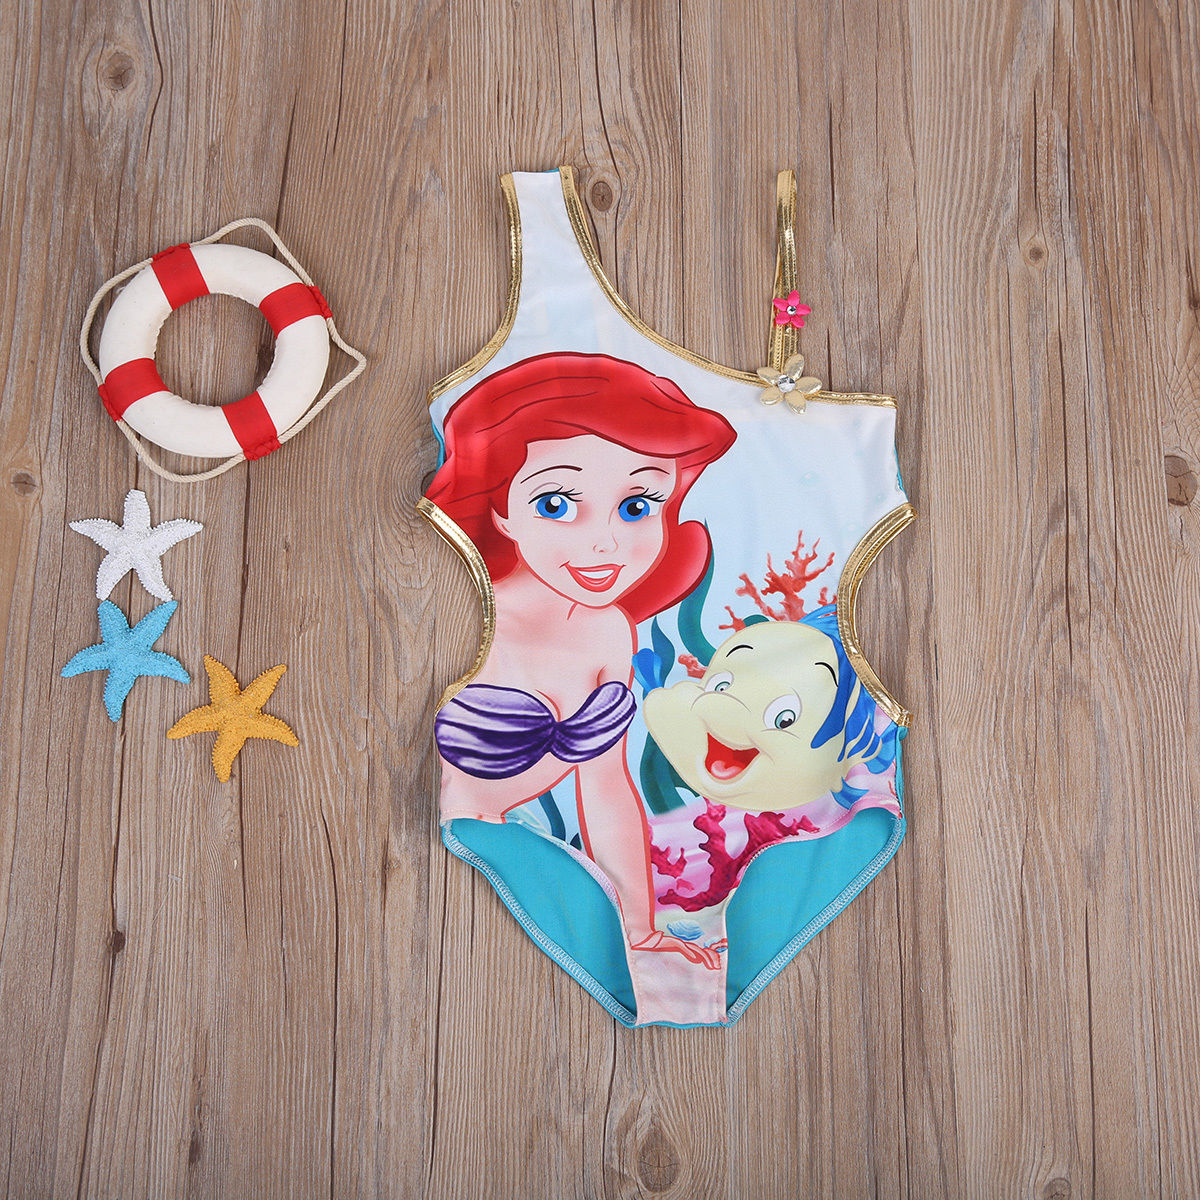 Floral Swimsuit Beachwear Mermaid One-Shoulder One-Piece Clothing Girl Cartoon Kids Little